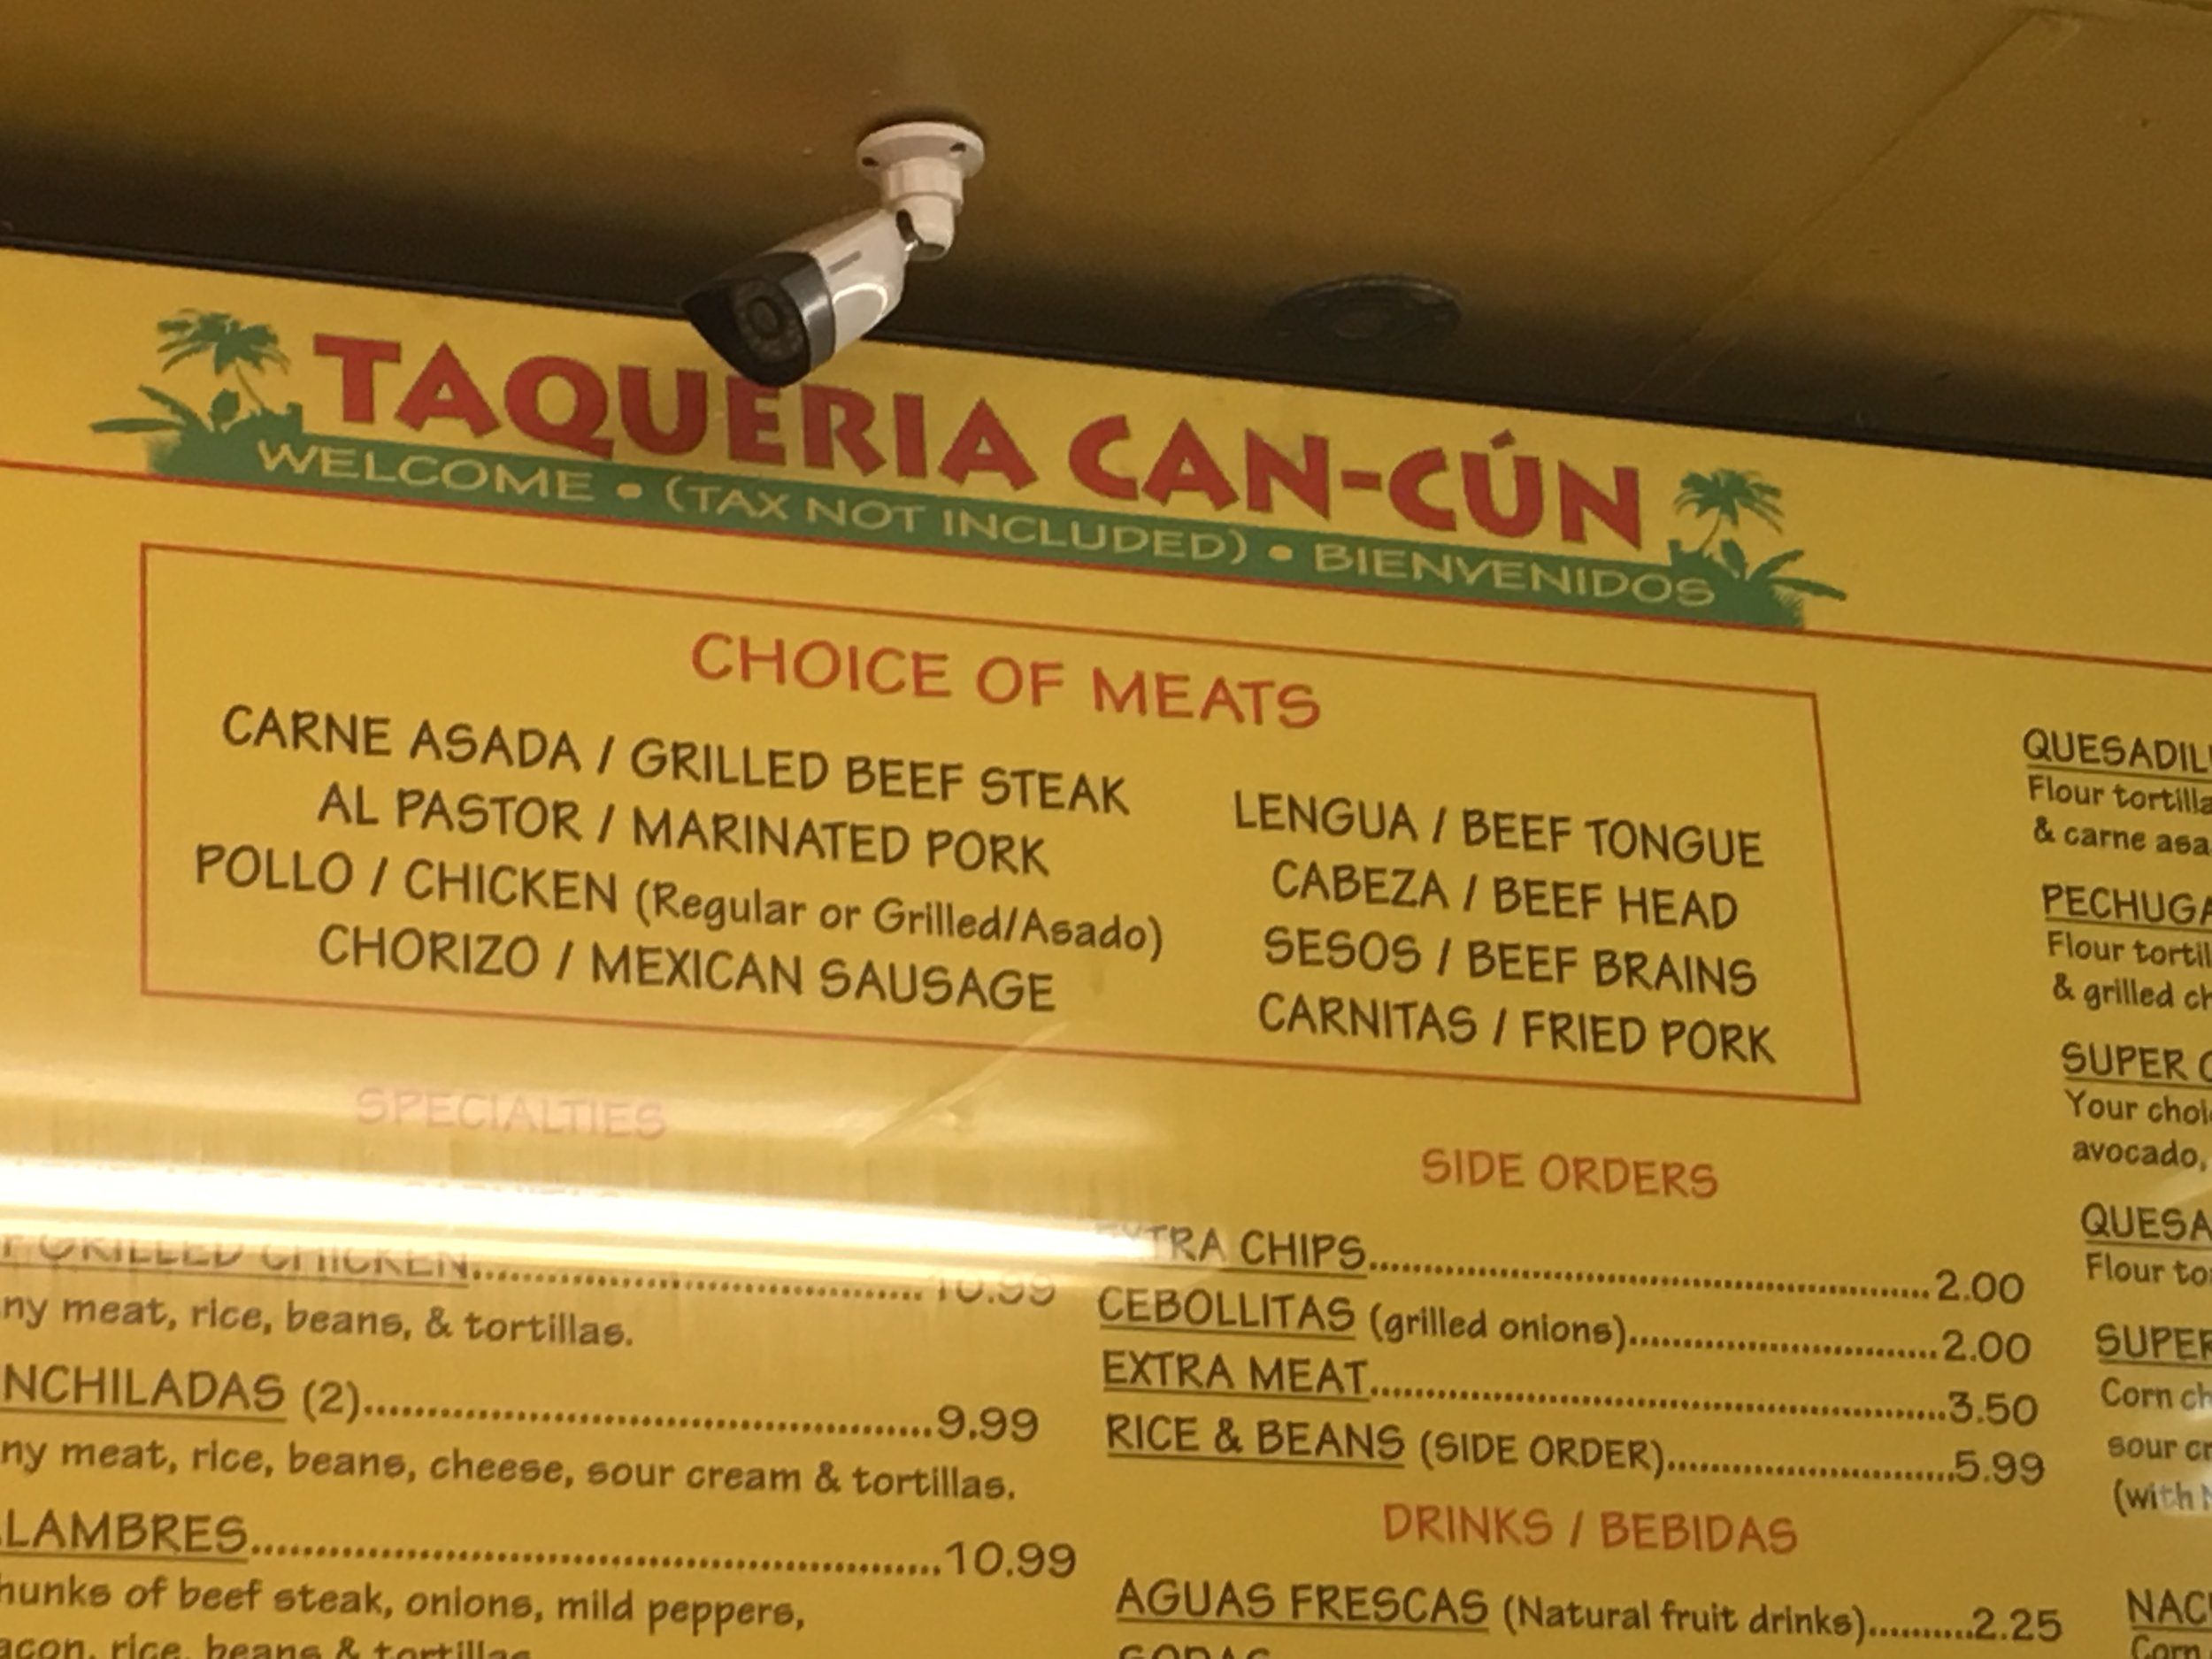 Choice of meats